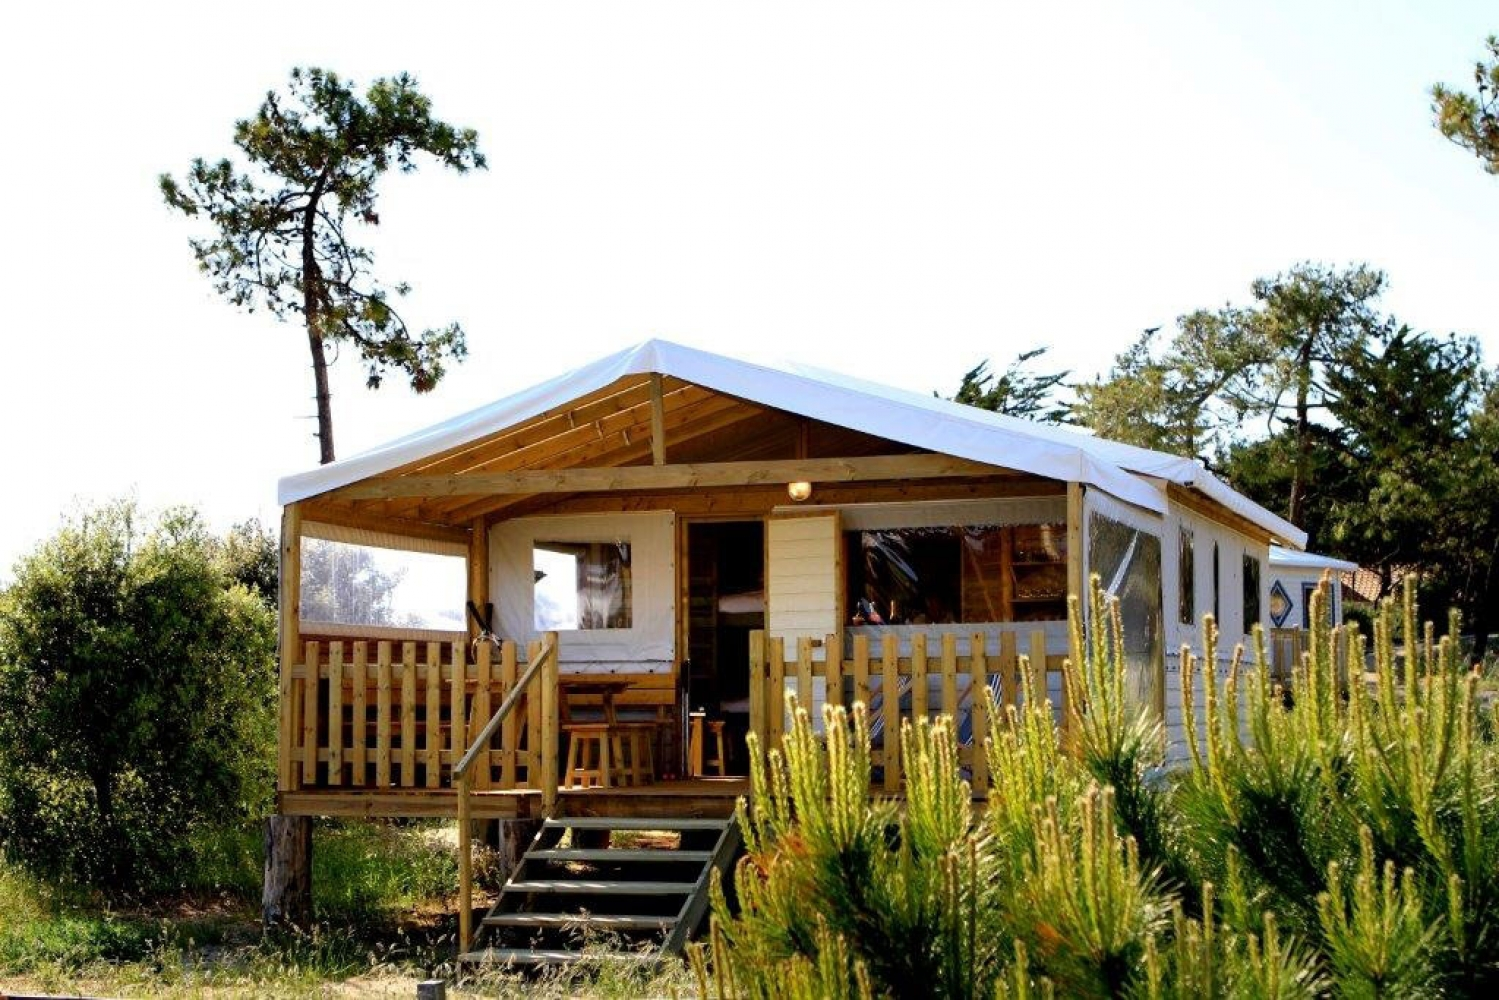 Bungalows for Lodges in france